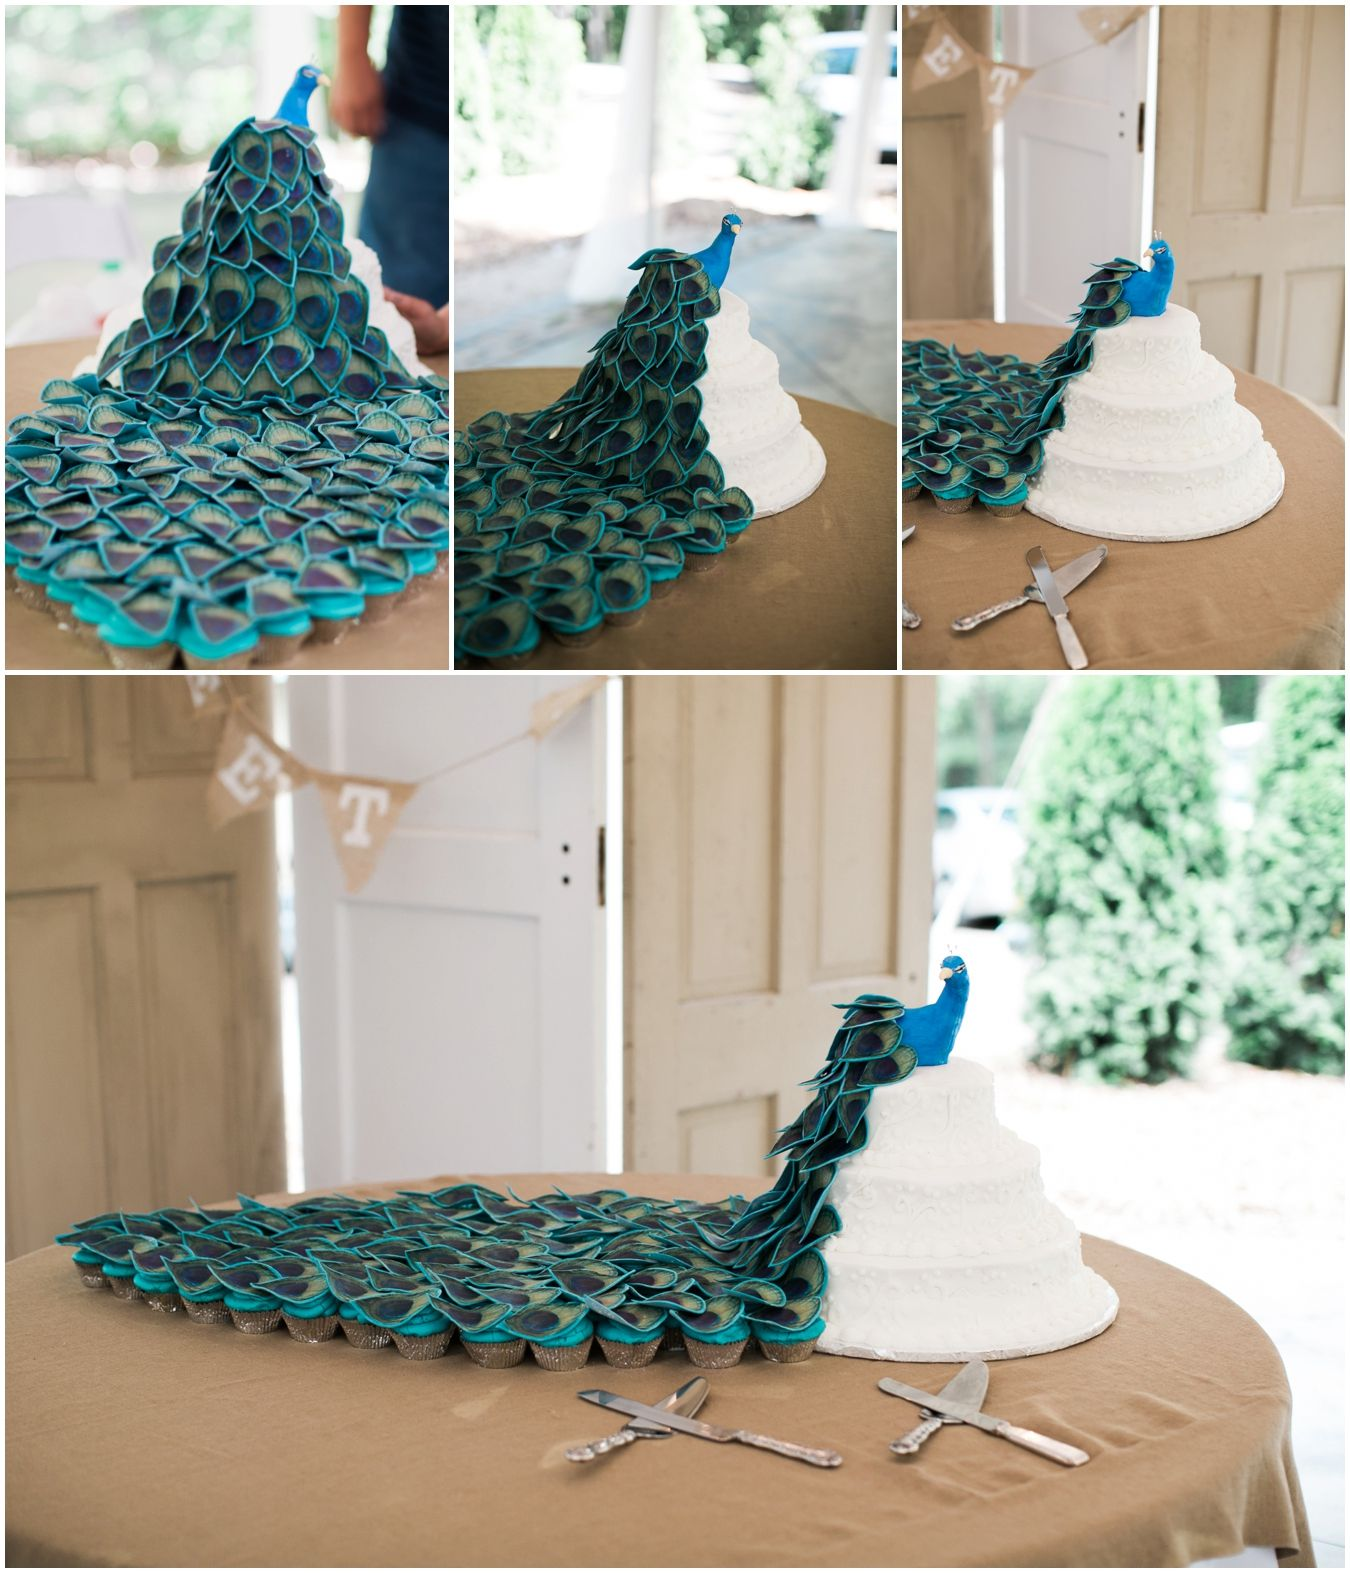 Unique Cupcake Wedding Ideas: Peacock Wedding With Cake AND Cupcakes To Match!